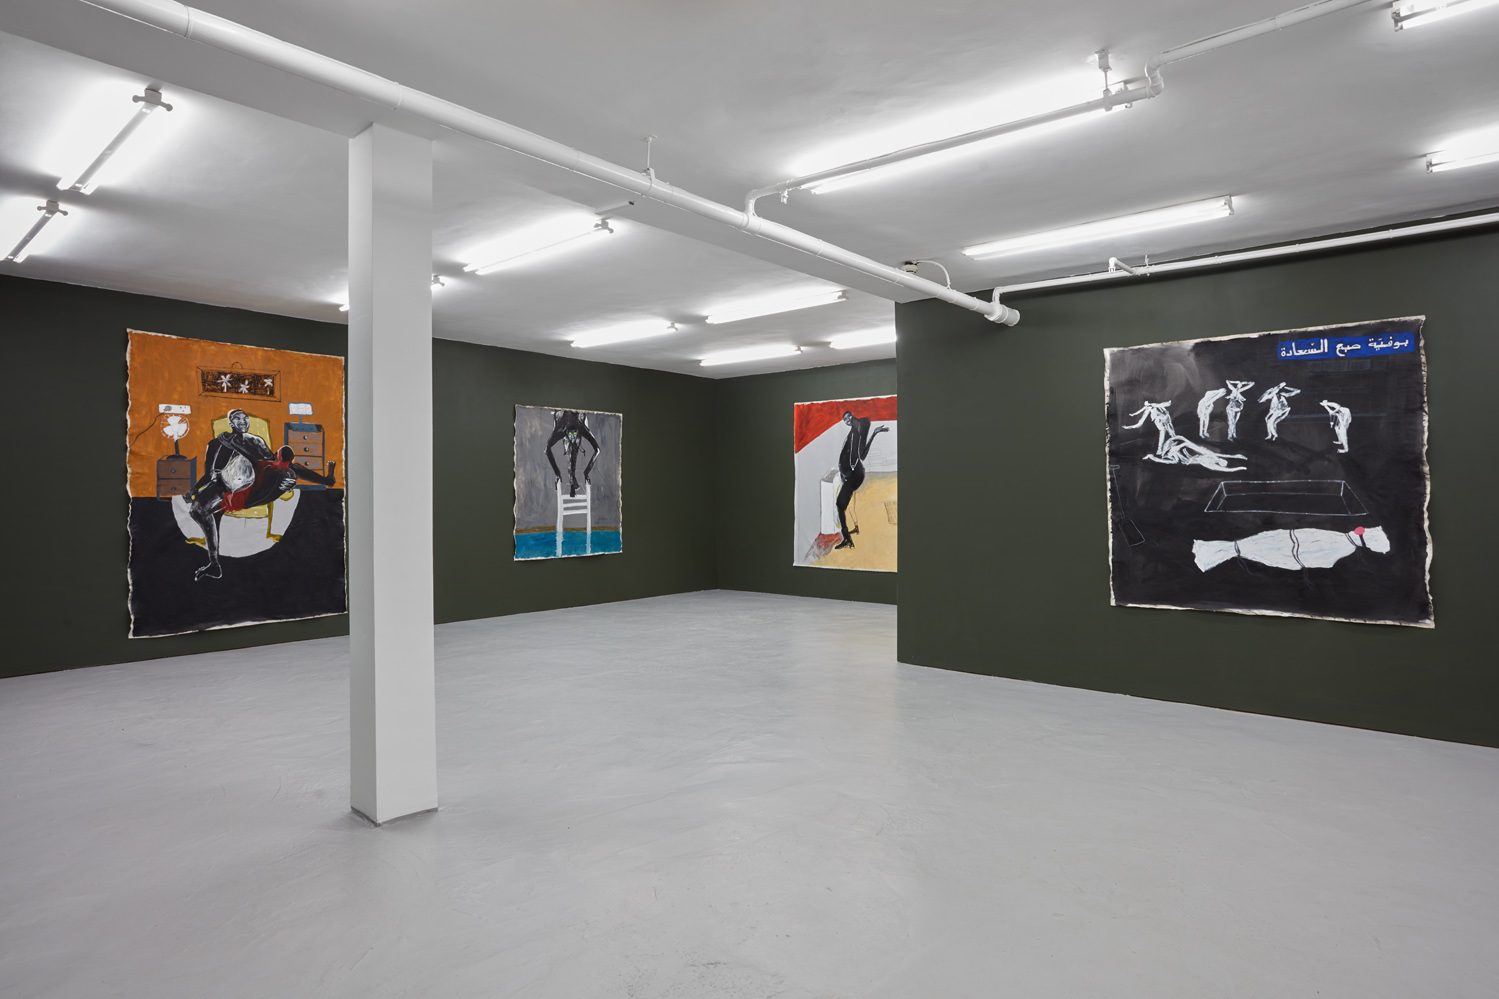 Installation view 3 Shadi Al-Atallah 'Fuck, I'm stuck!' J HAMMOND PROJECTS London 2019 low res.jpg